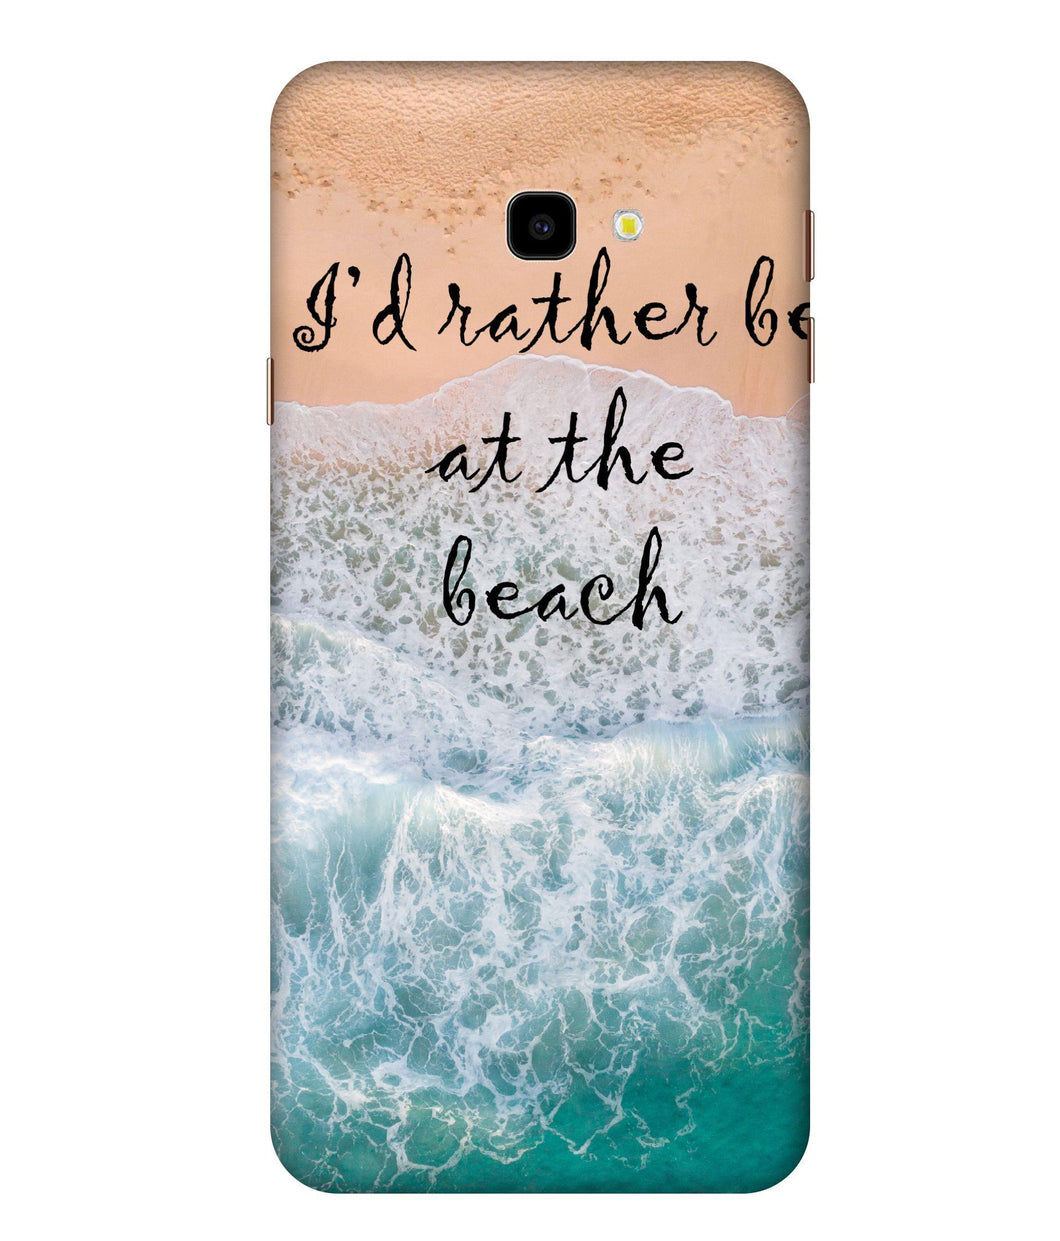 Samsung Galaxy J4 Beach Mobile Cover